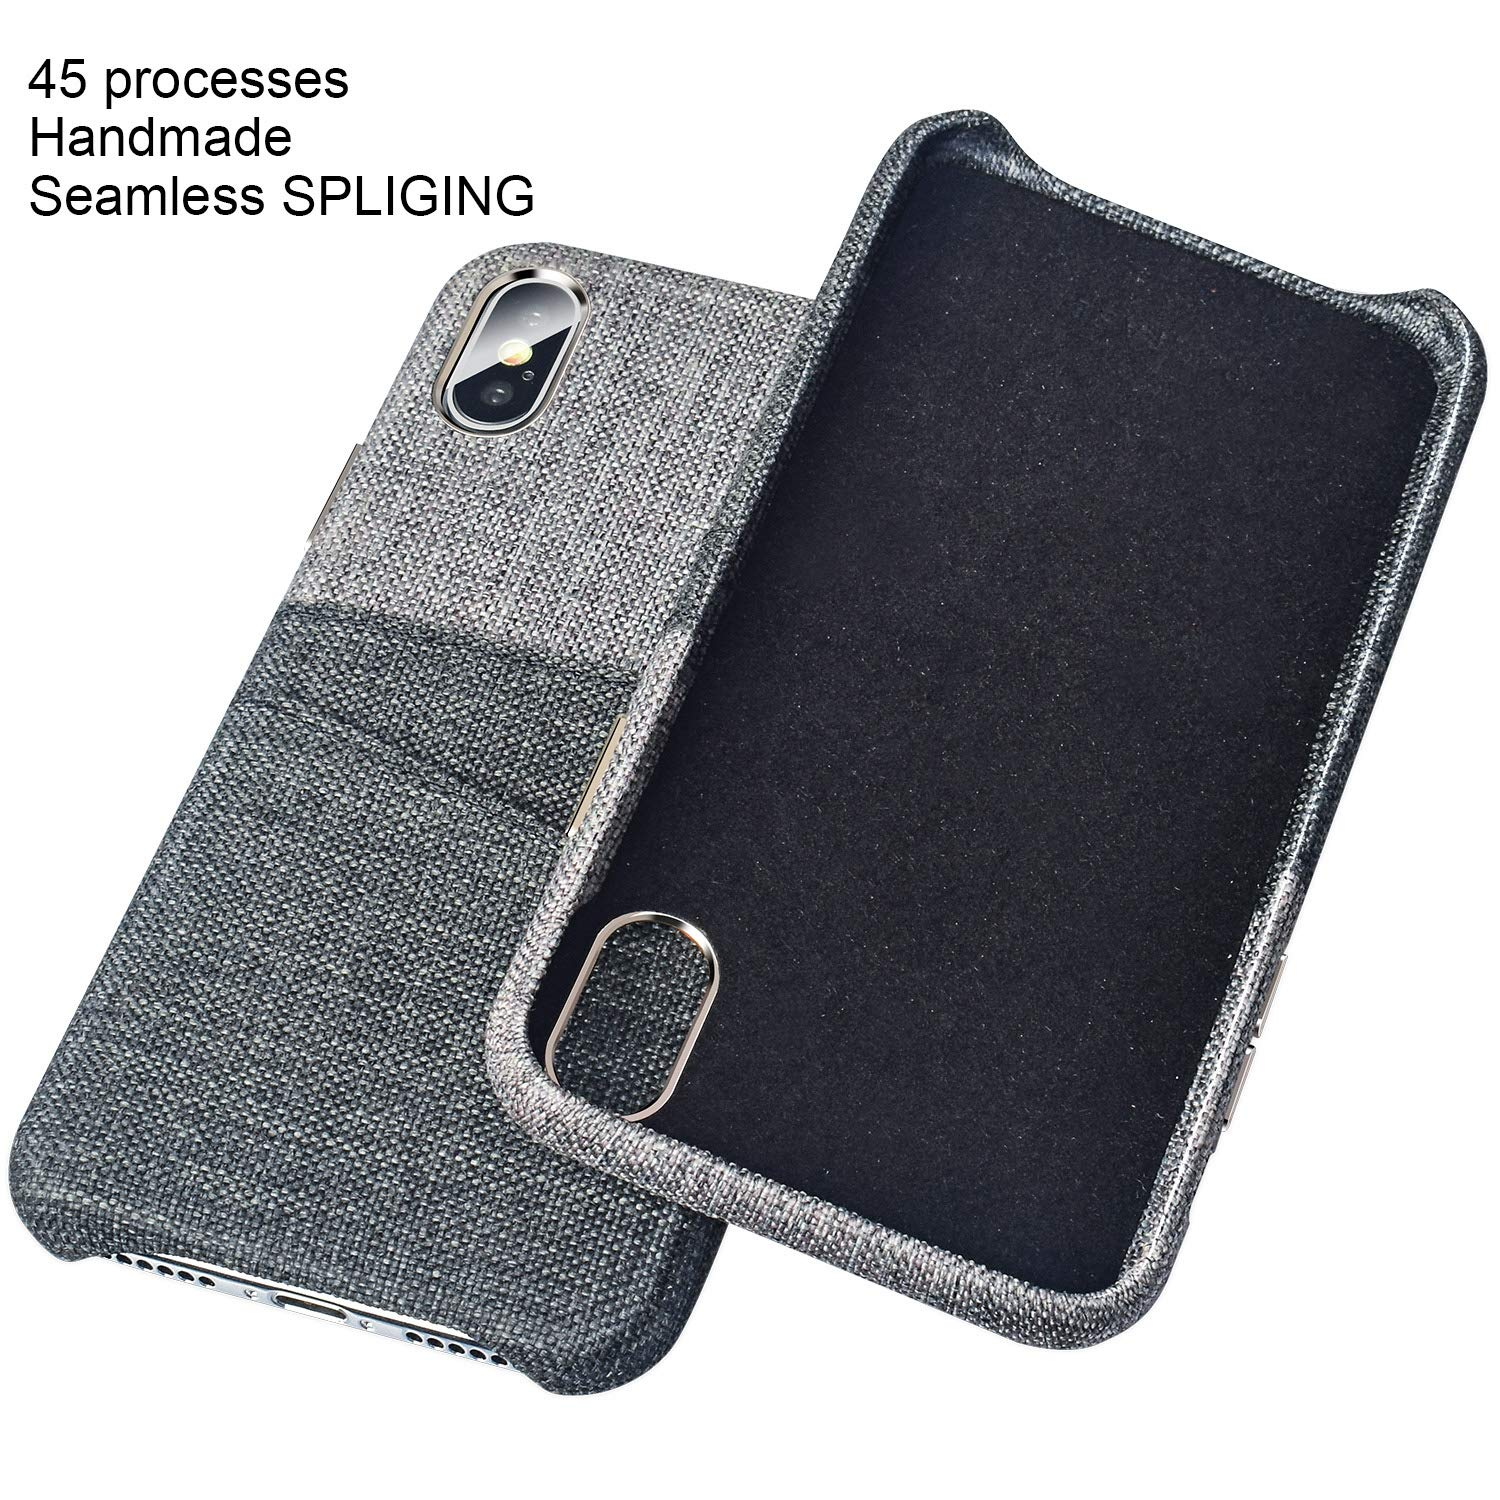 PARFASE iPhone Xs Max Wallet Case, iPhone Xs Max Case Soft Cloth Fabric Case with 2 ID Credit Card Holder Slots for Apple iPhone Xs Max 6.5 inch (Gray/Black)